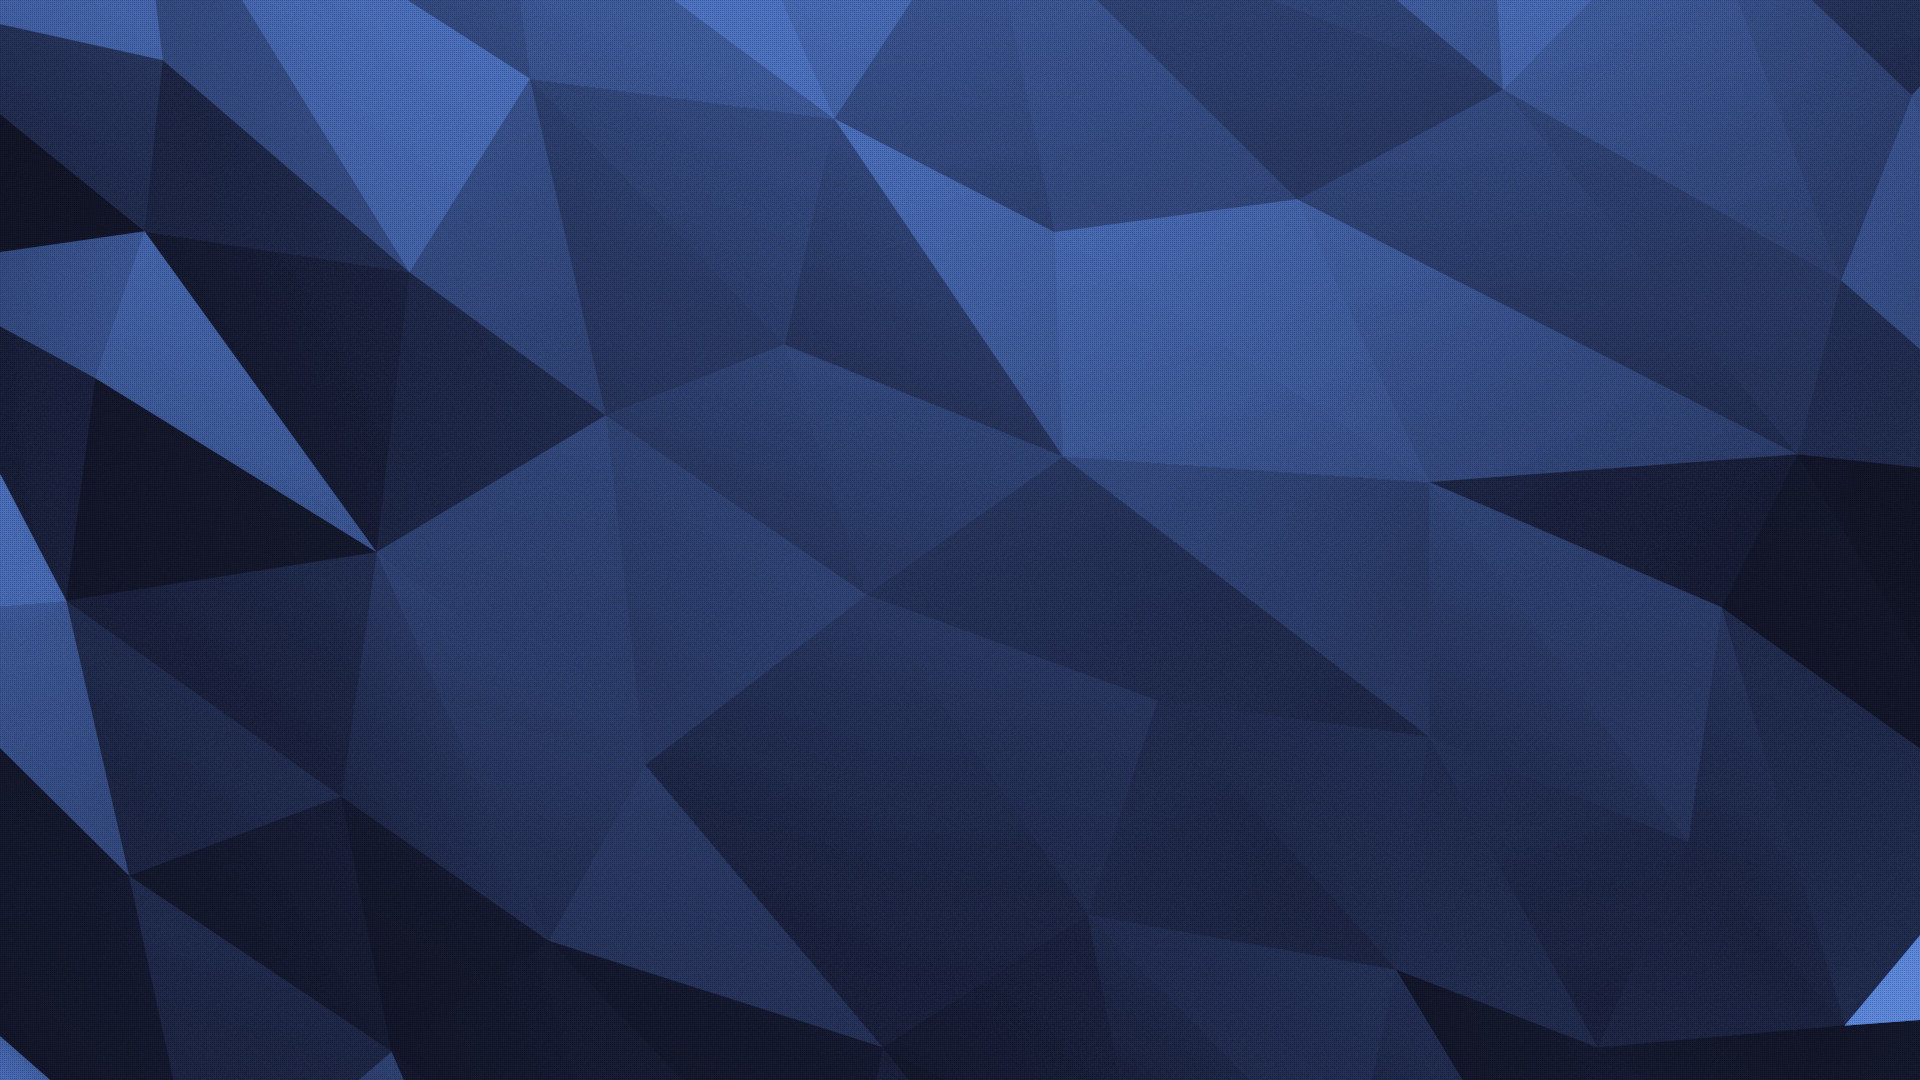 Free download Triangle background ID:269429 hd 1920x1080 for computer